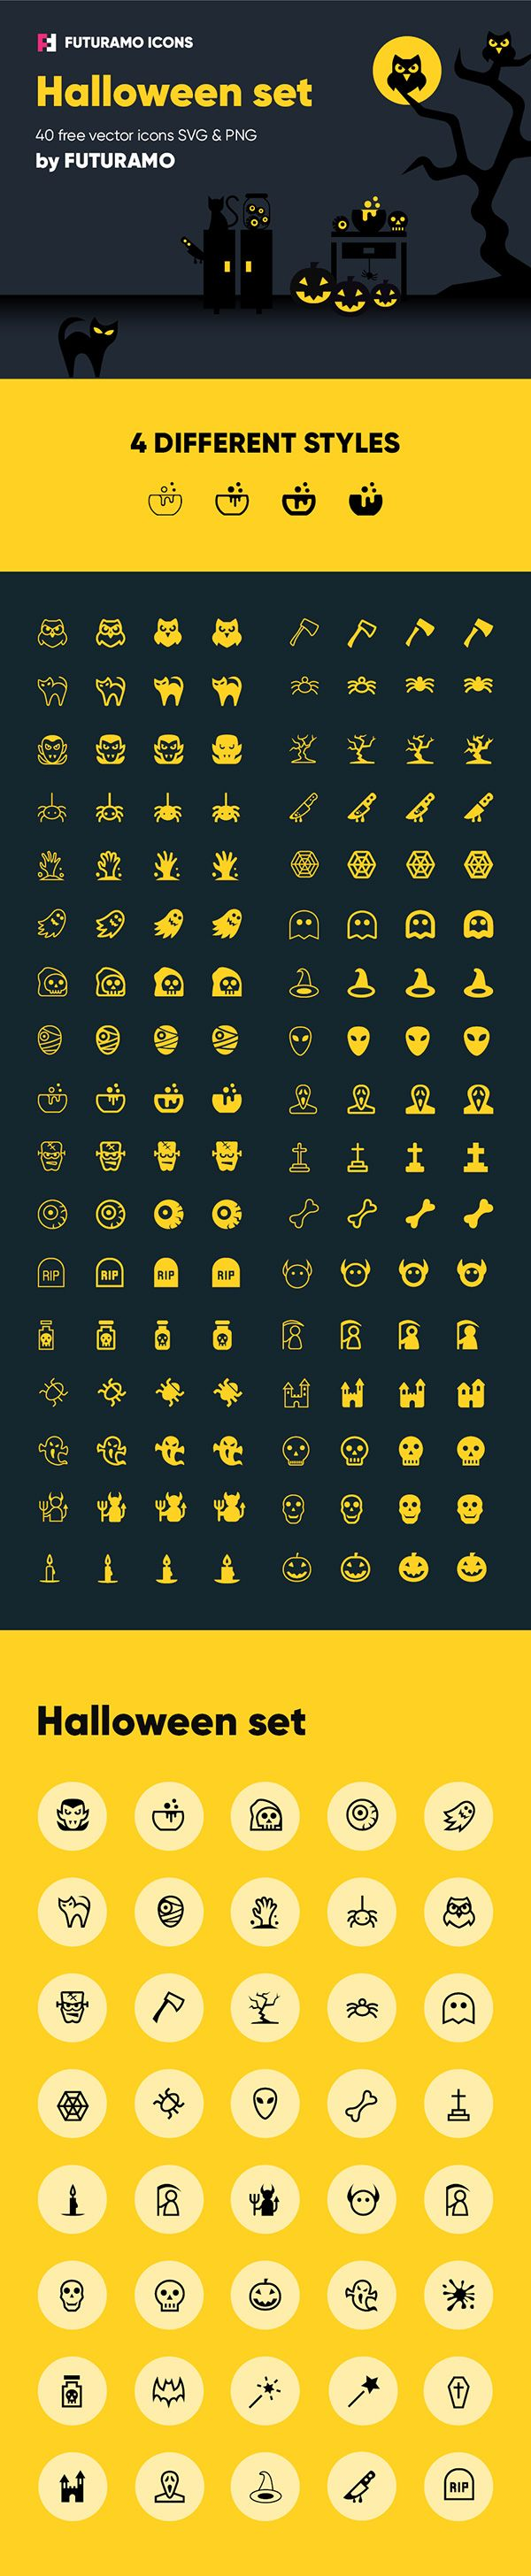 Treat yourself to this new set of 40 spooky Halloween icons and use them freely in your upcoming projects...